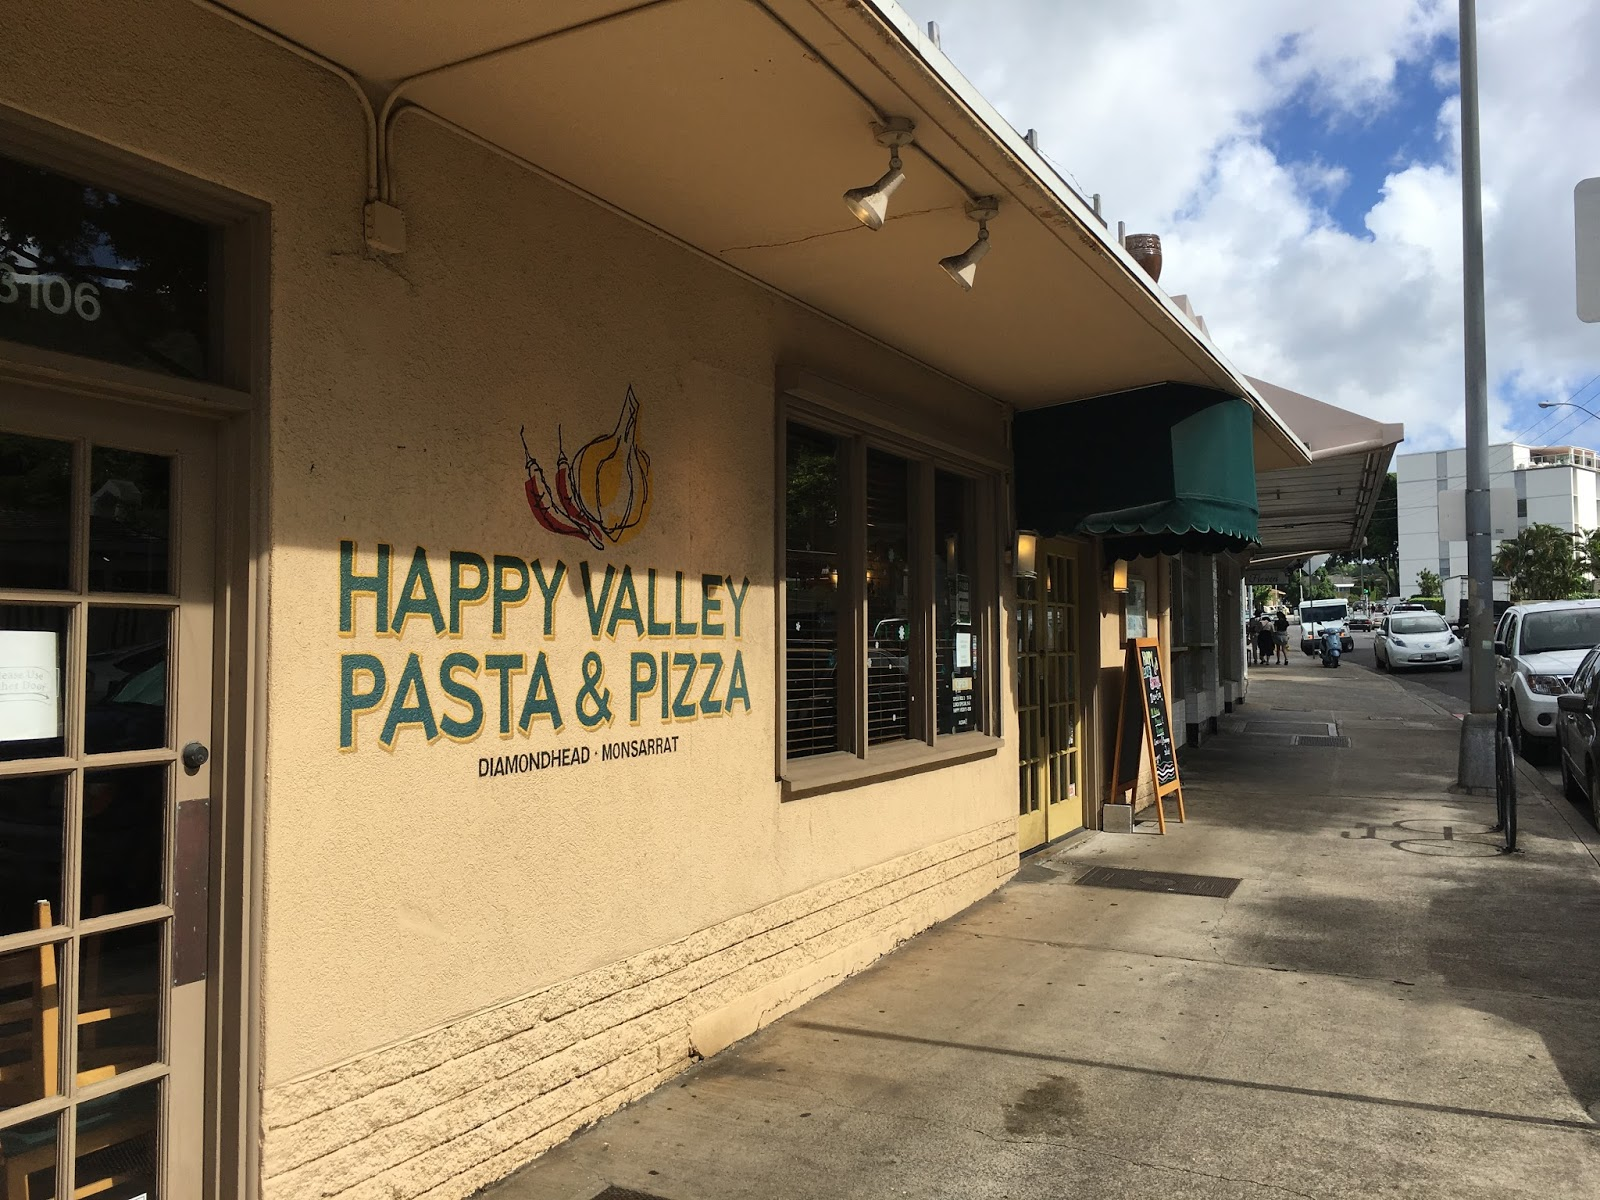 TASTE OF HAWAII: HAPPY VALLEY PASTA AND PIZZA